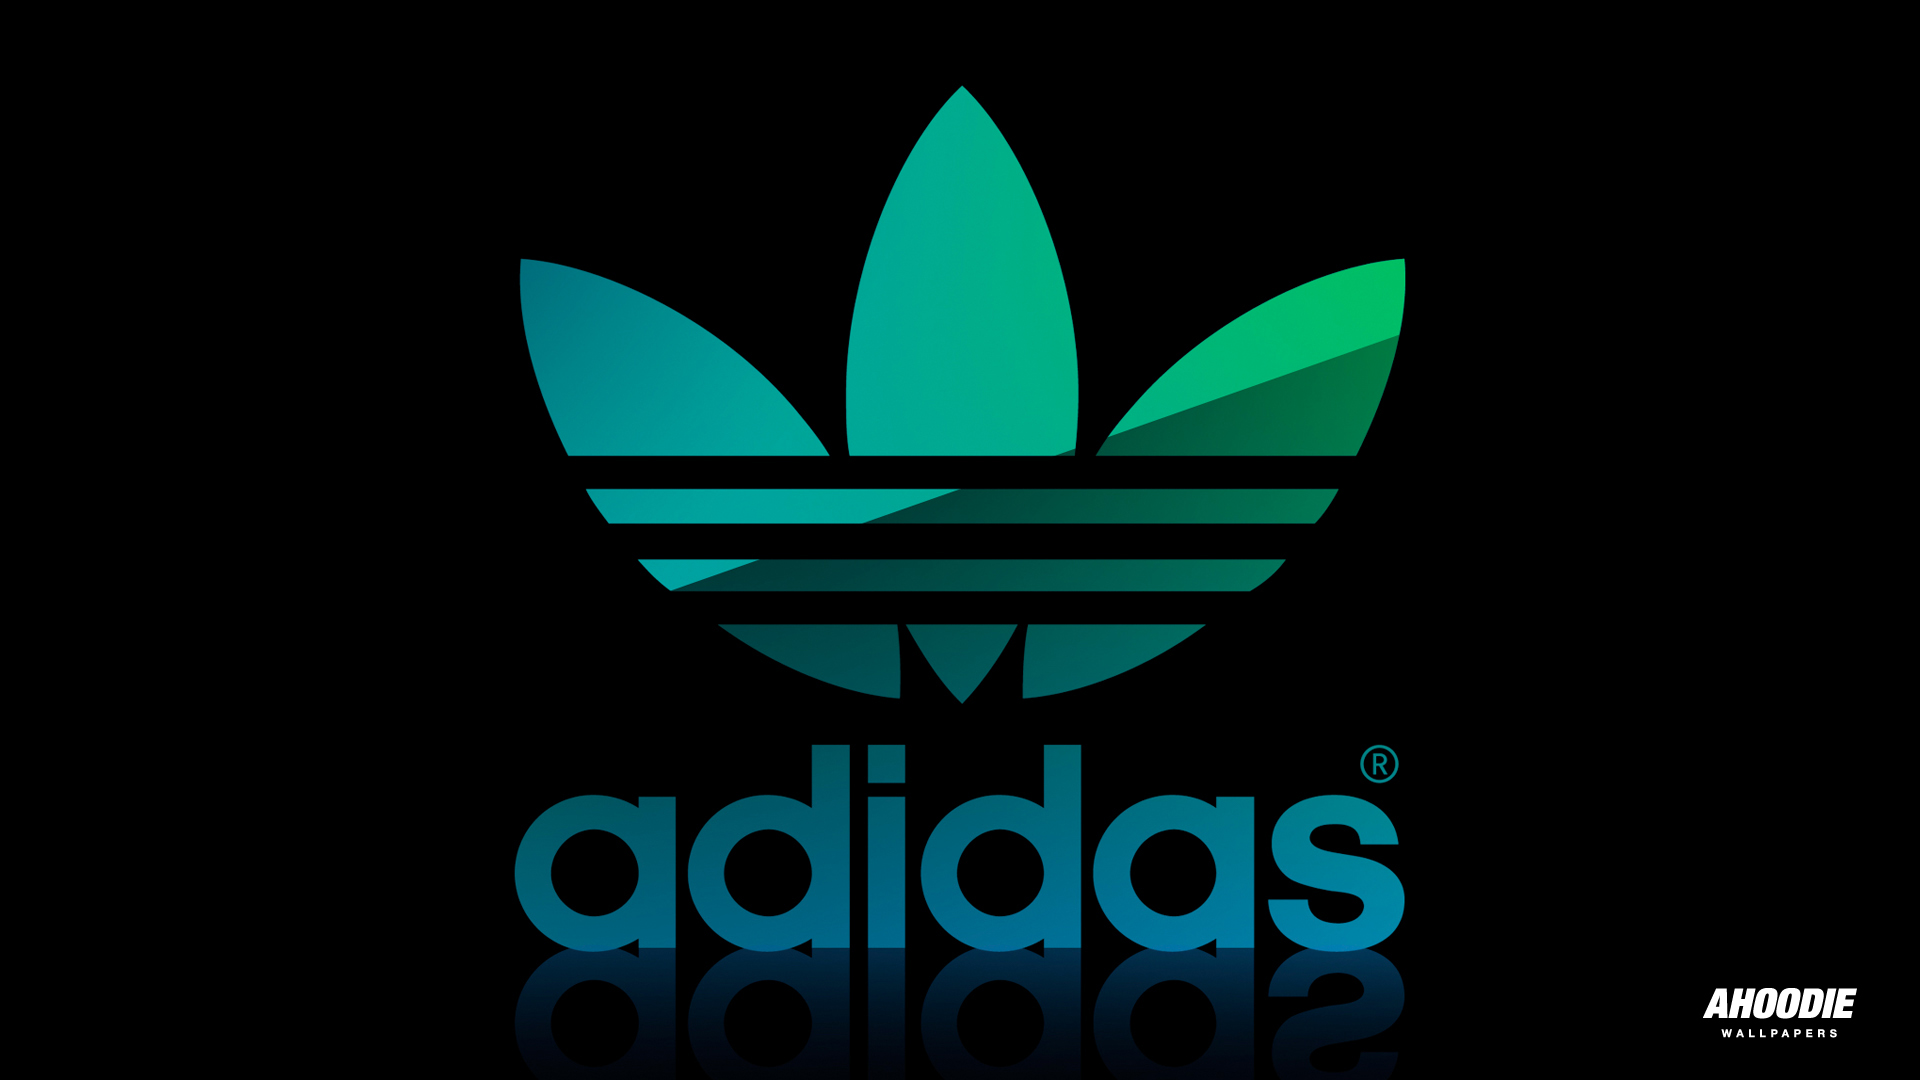 Adidas Chelsea Wallpaper For Desktop 1920x1080